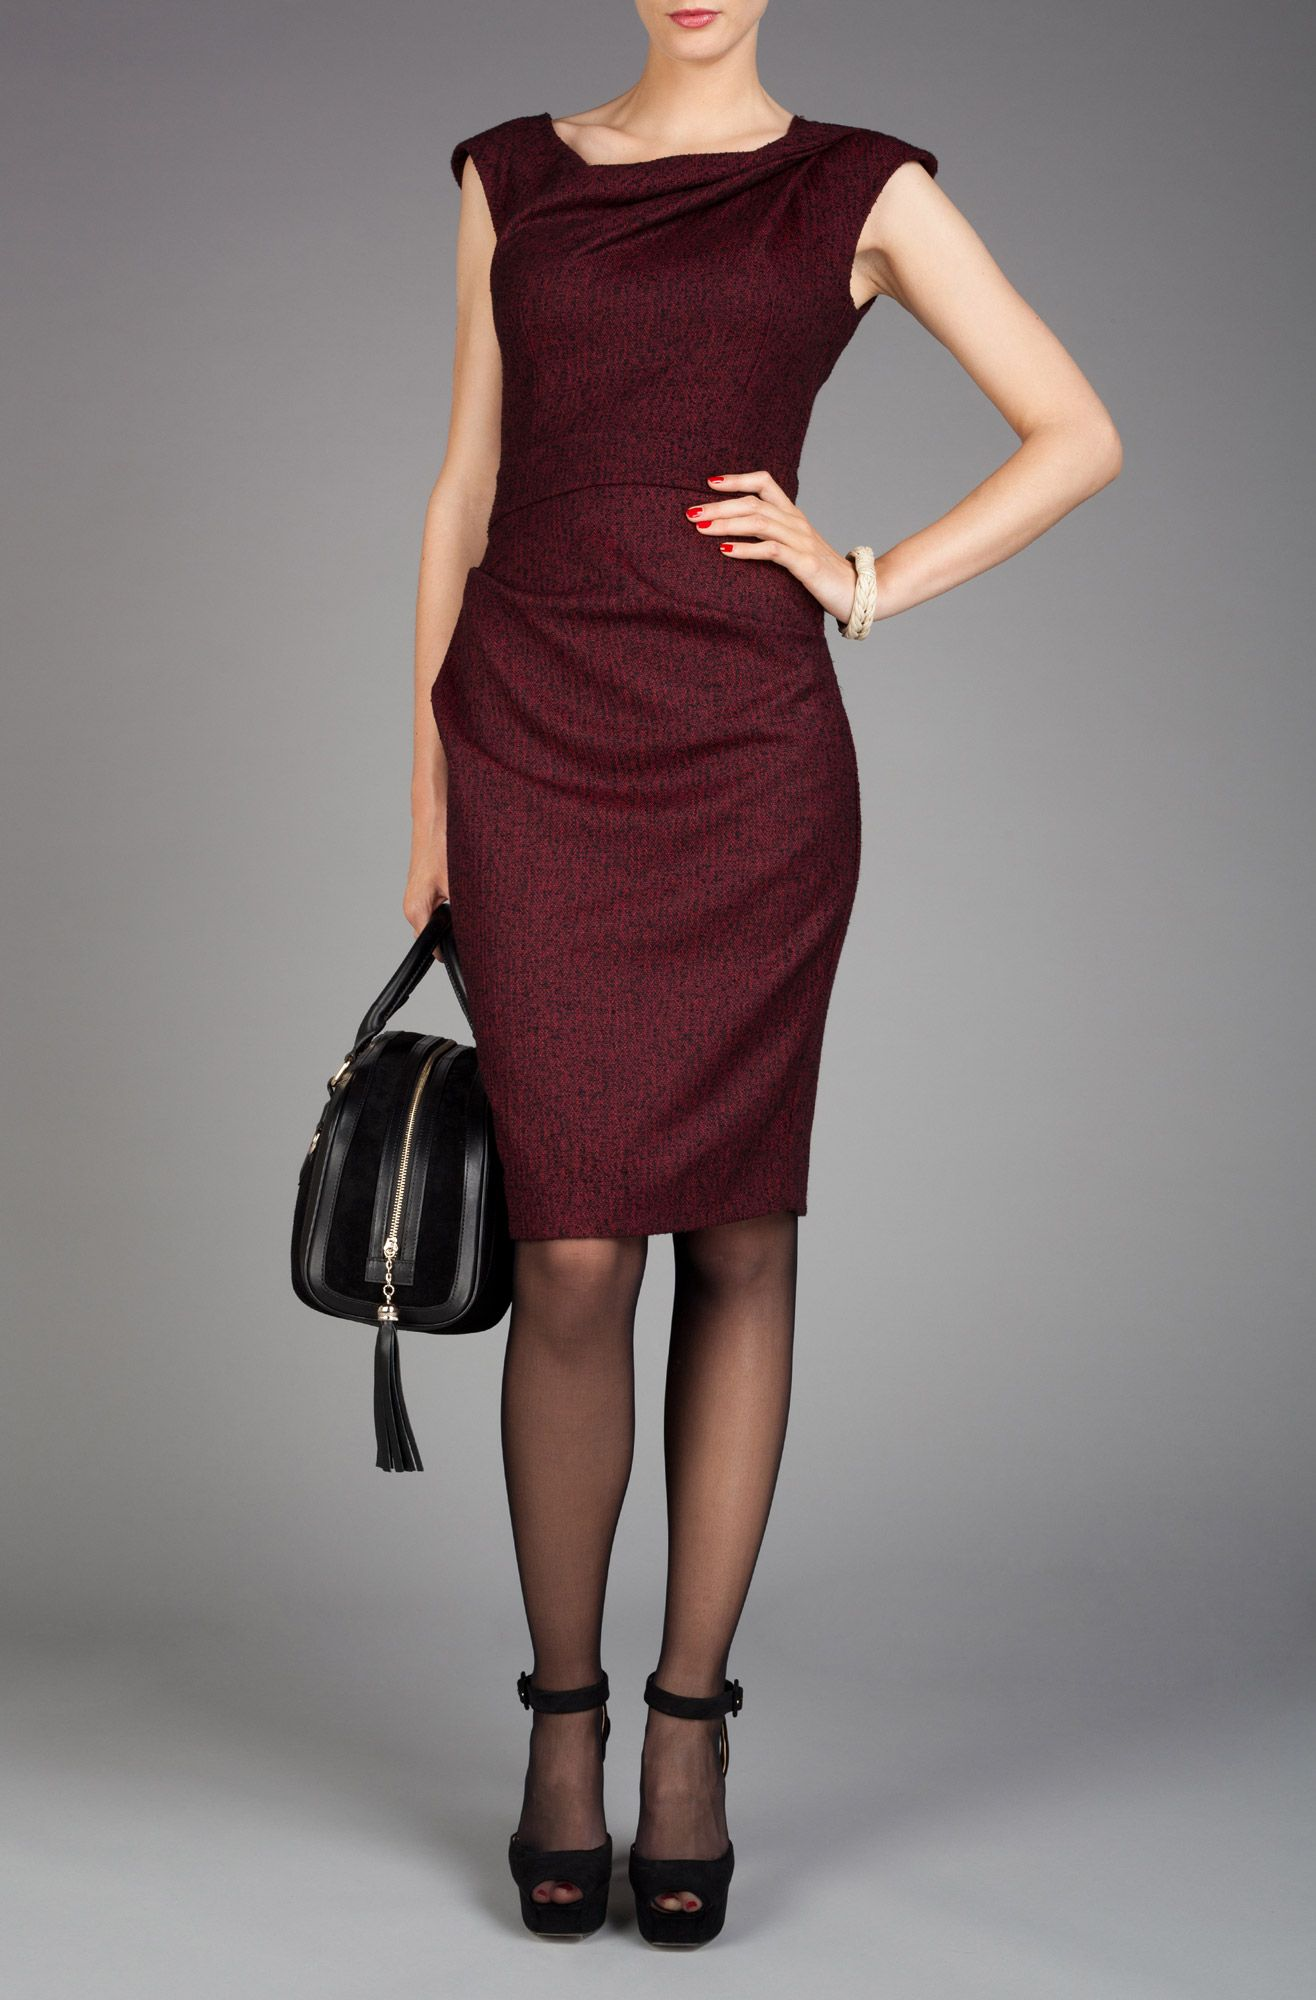 Axara Paris - Bordeaux dress (Fall 2012)